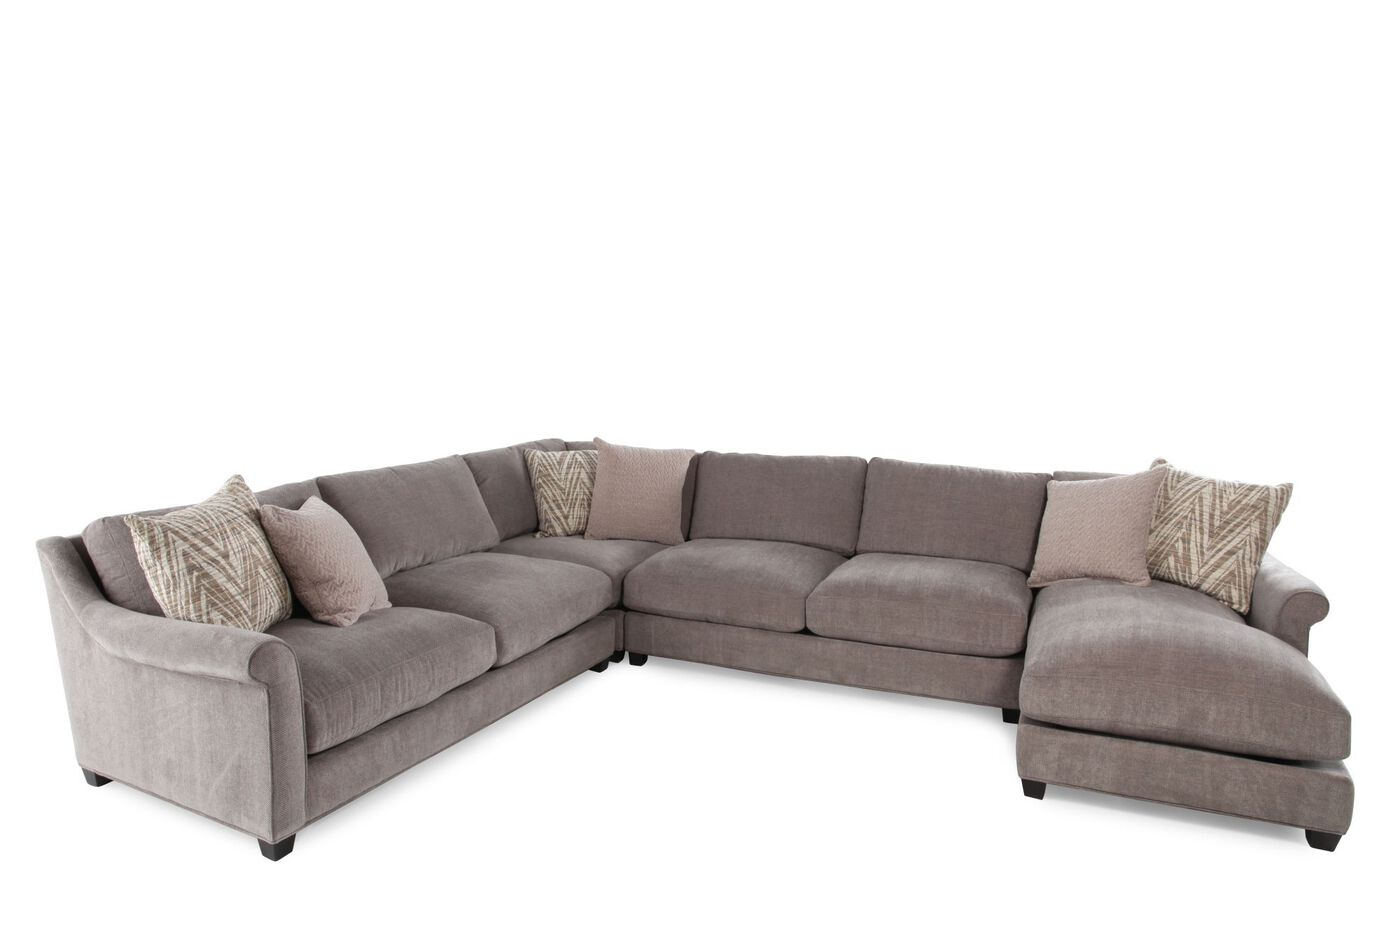 Four piece microfiber sectional in milk chocolate mathis for 4 living furniture